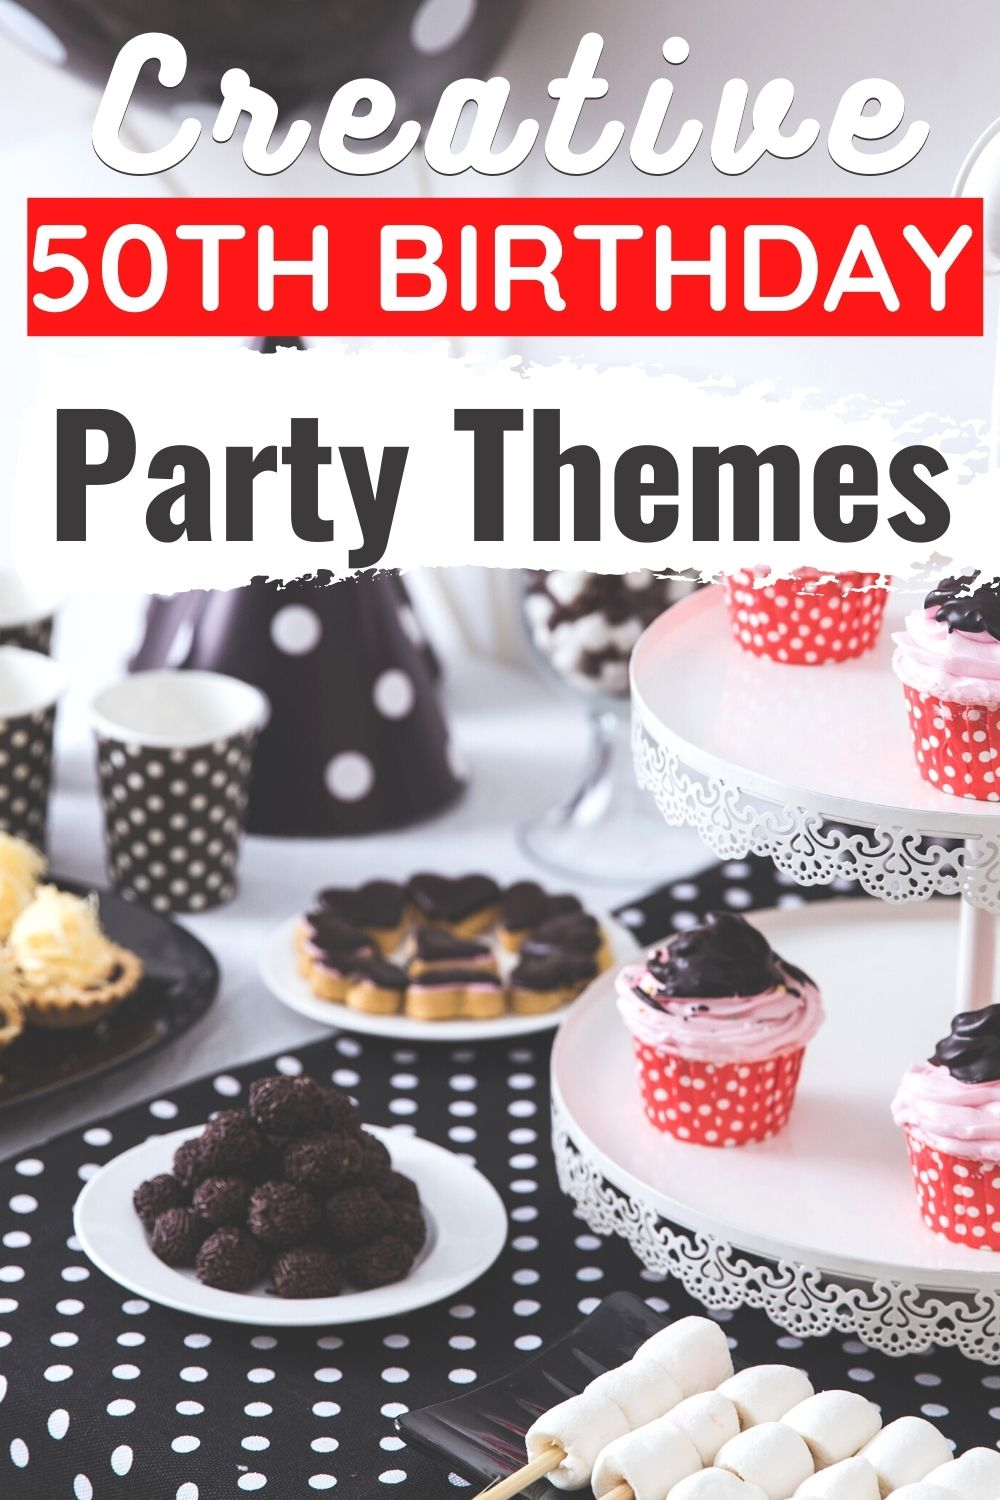 Creative 50th birthday party themes